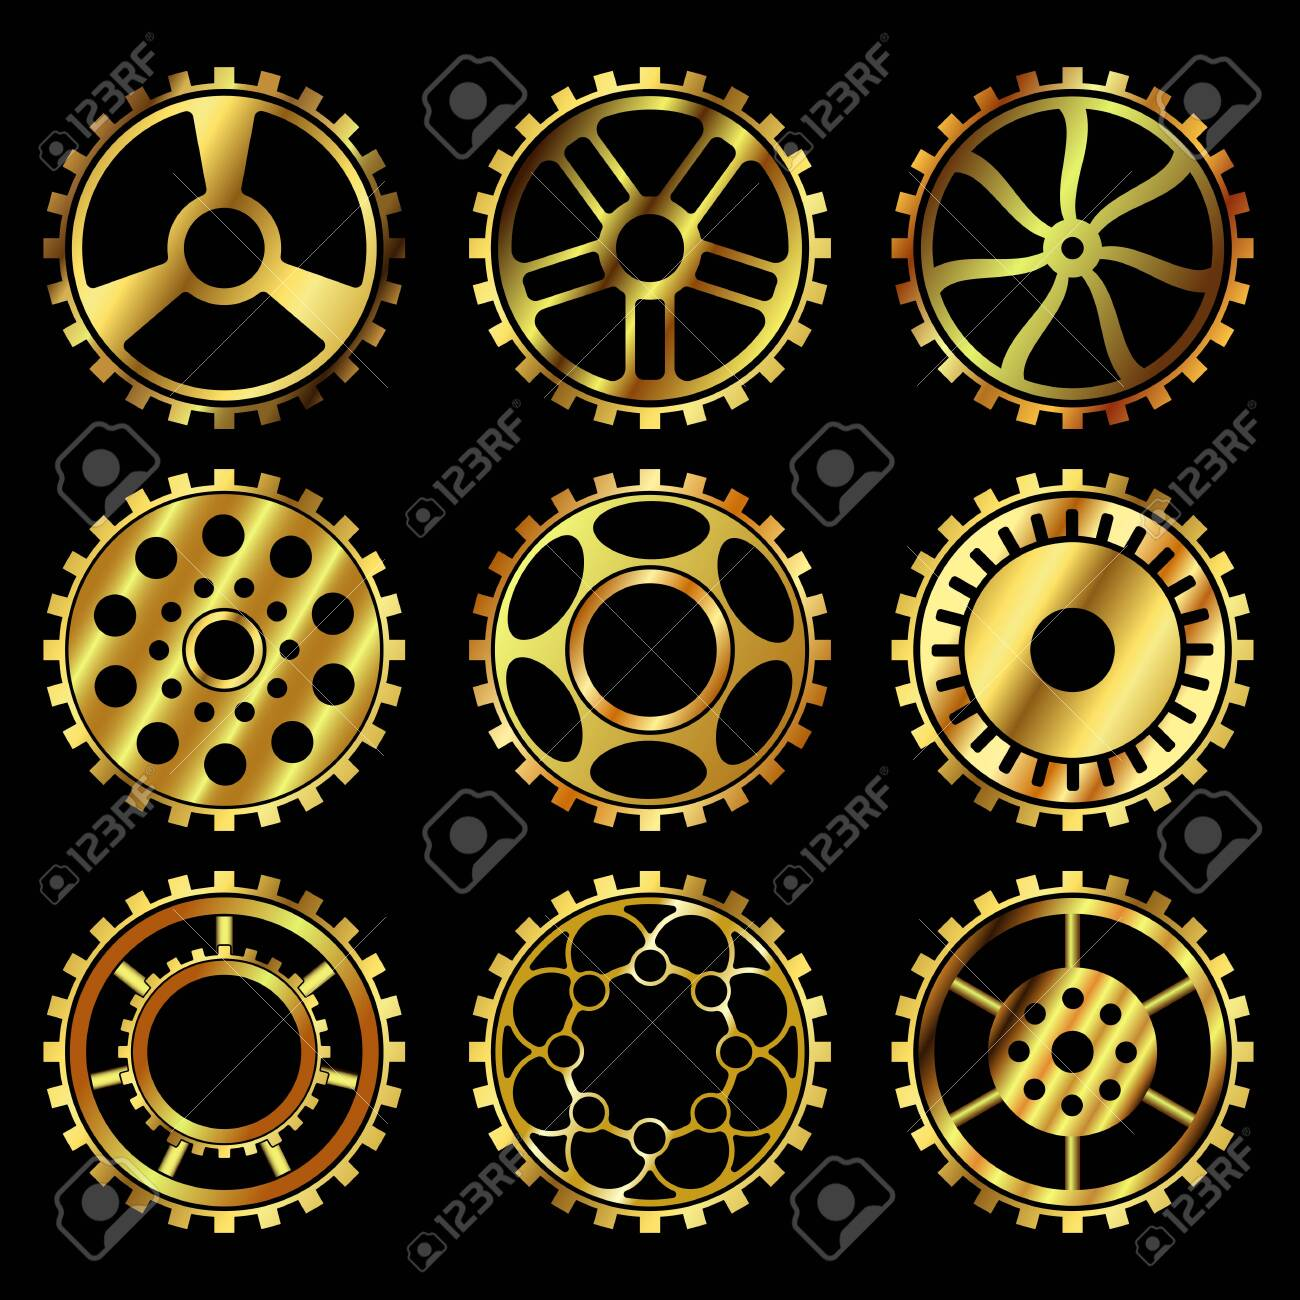 Vector golden gears set in the style of steampunk vector - 123962431